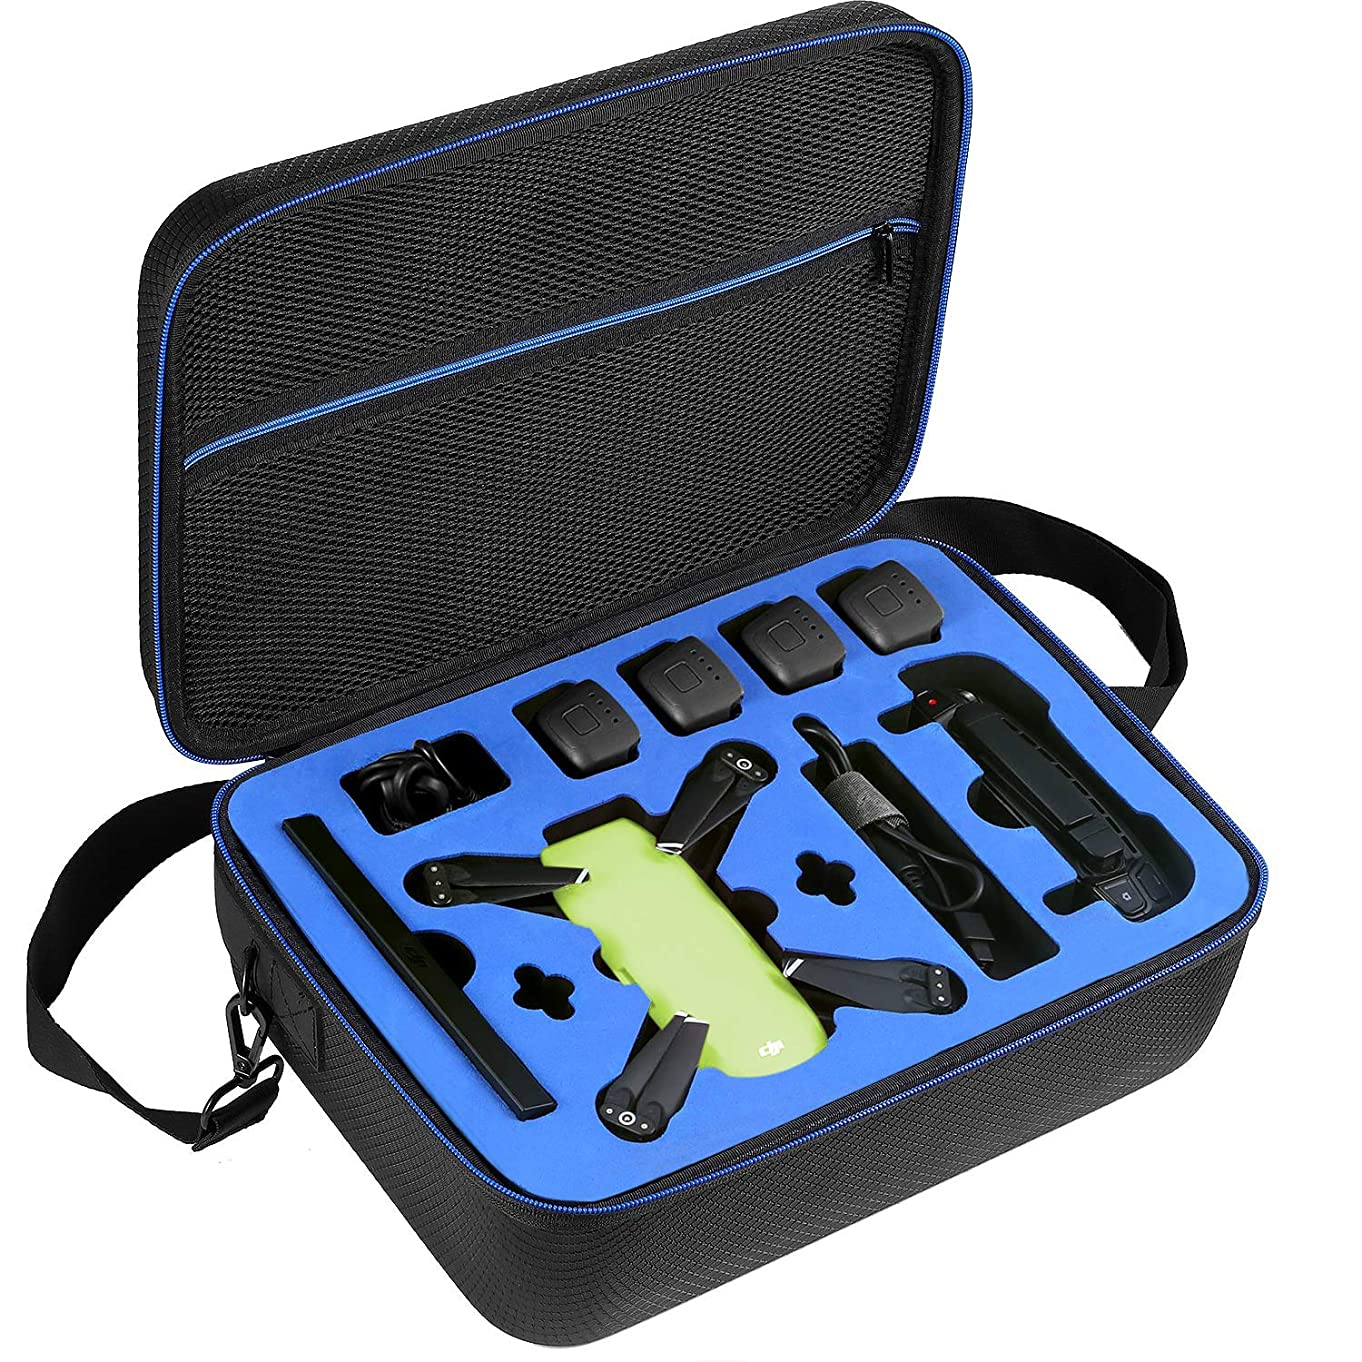 DACCKIT Travel Carrying Case Compatible with DJI Spark Fly More Combo - Fit DJI Spark Drone, 4x Intelligent Flight Batteries, Remote Controller, Charging Hub and other accessories